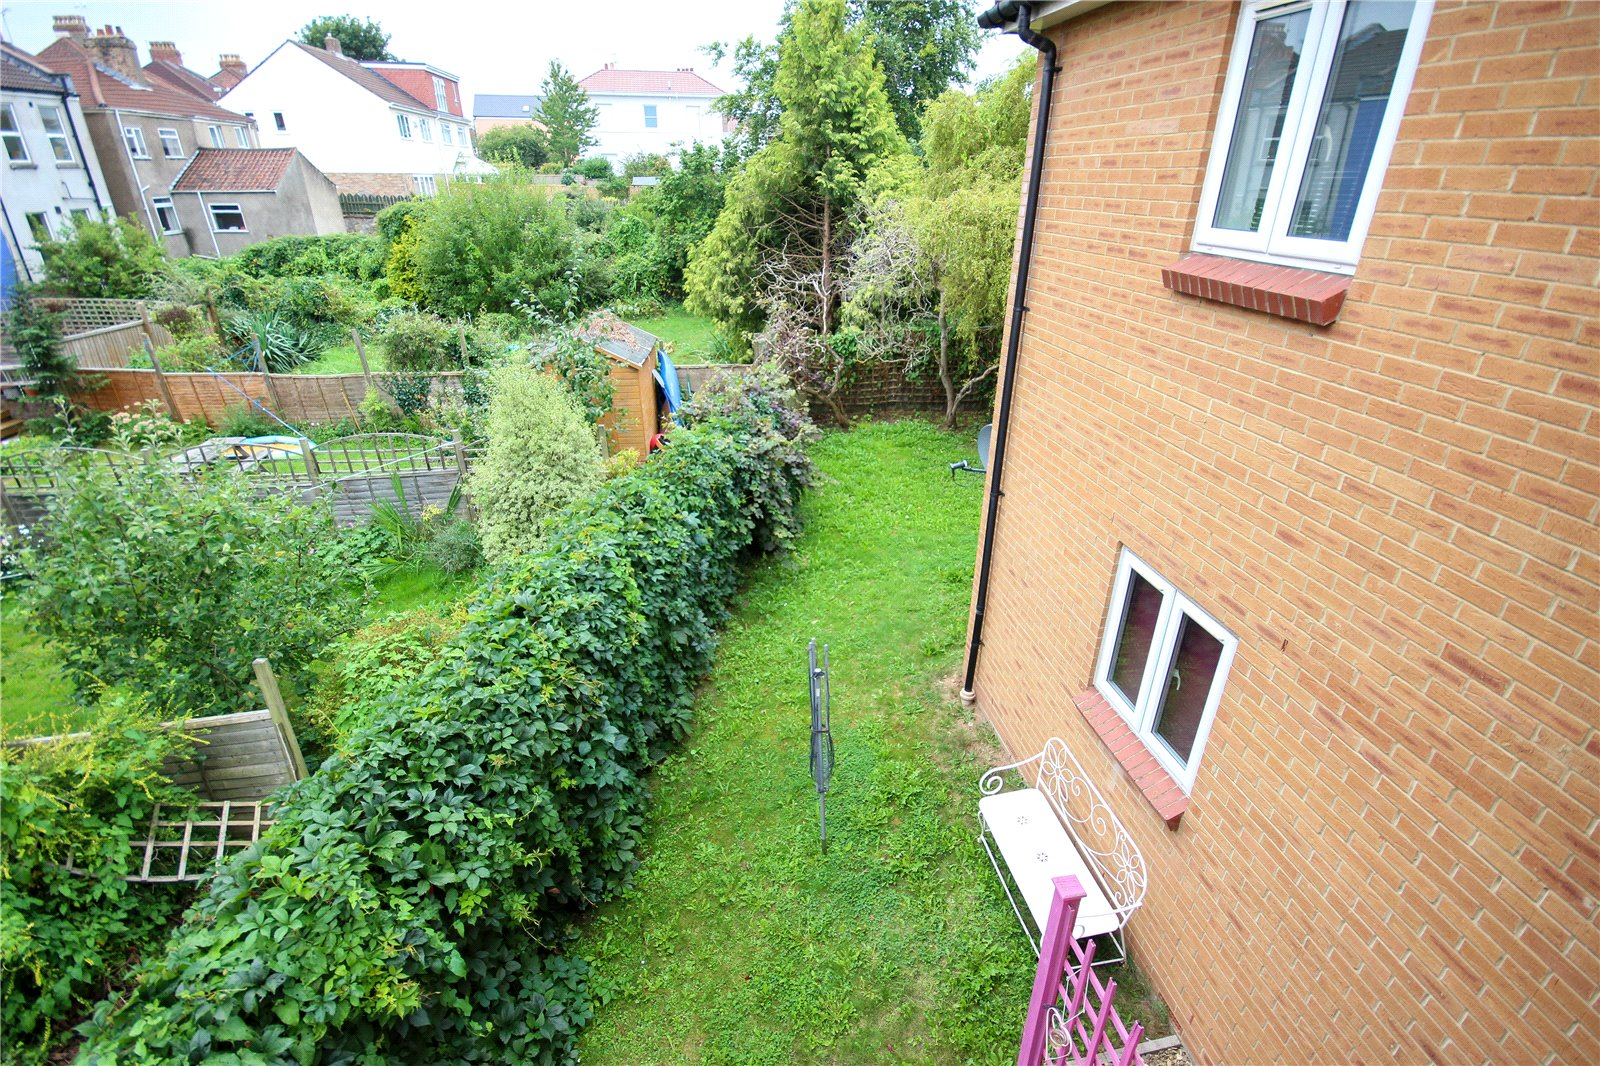 Cj Hole Bishopston 1 Bedroom Flat To Rent In Ashley Down